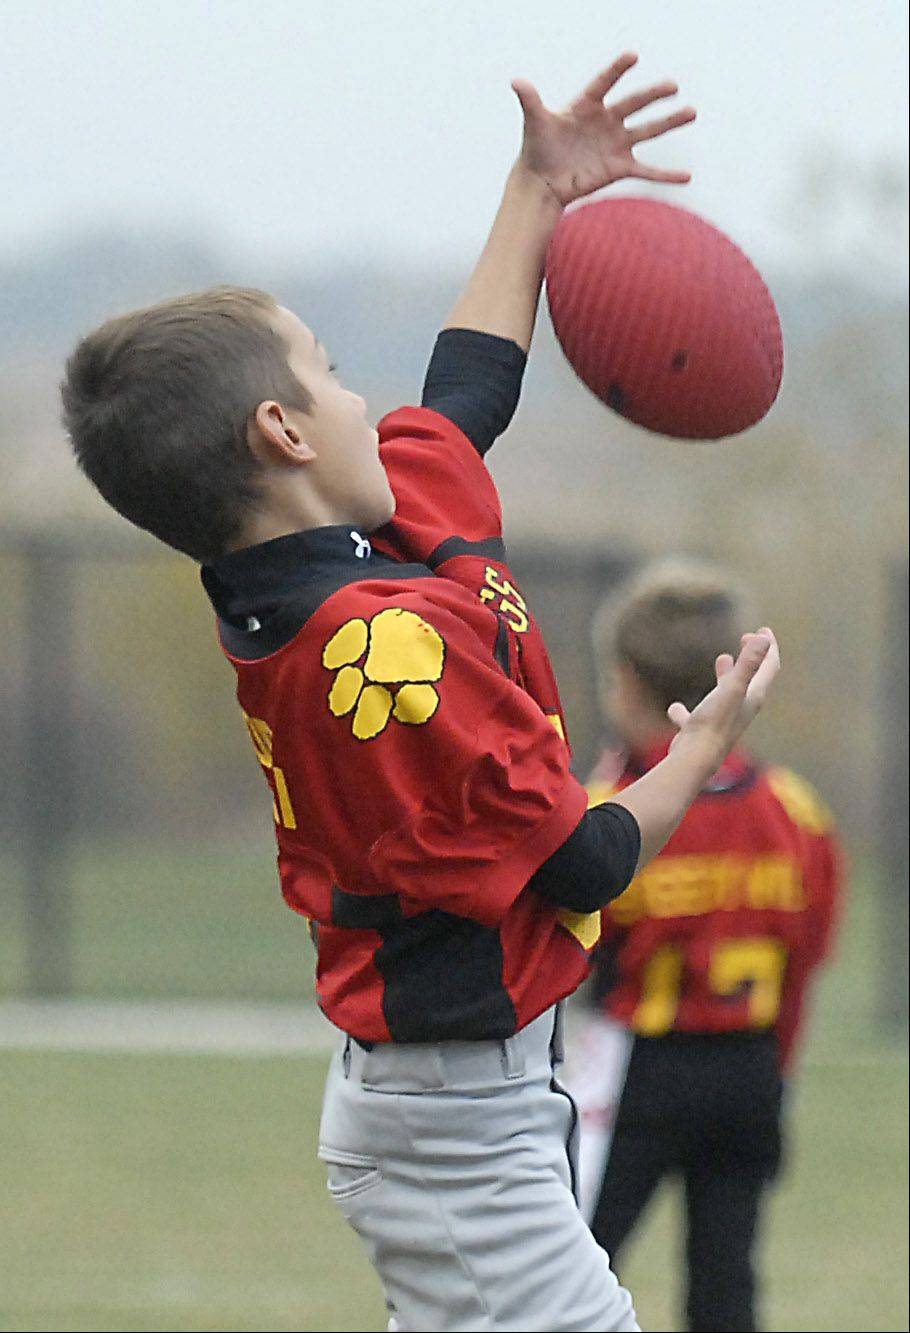 Andrew Gorski, 7, of Batavia reaches out for a pass during warm-ups before a game with the Batavia Youth Football league.